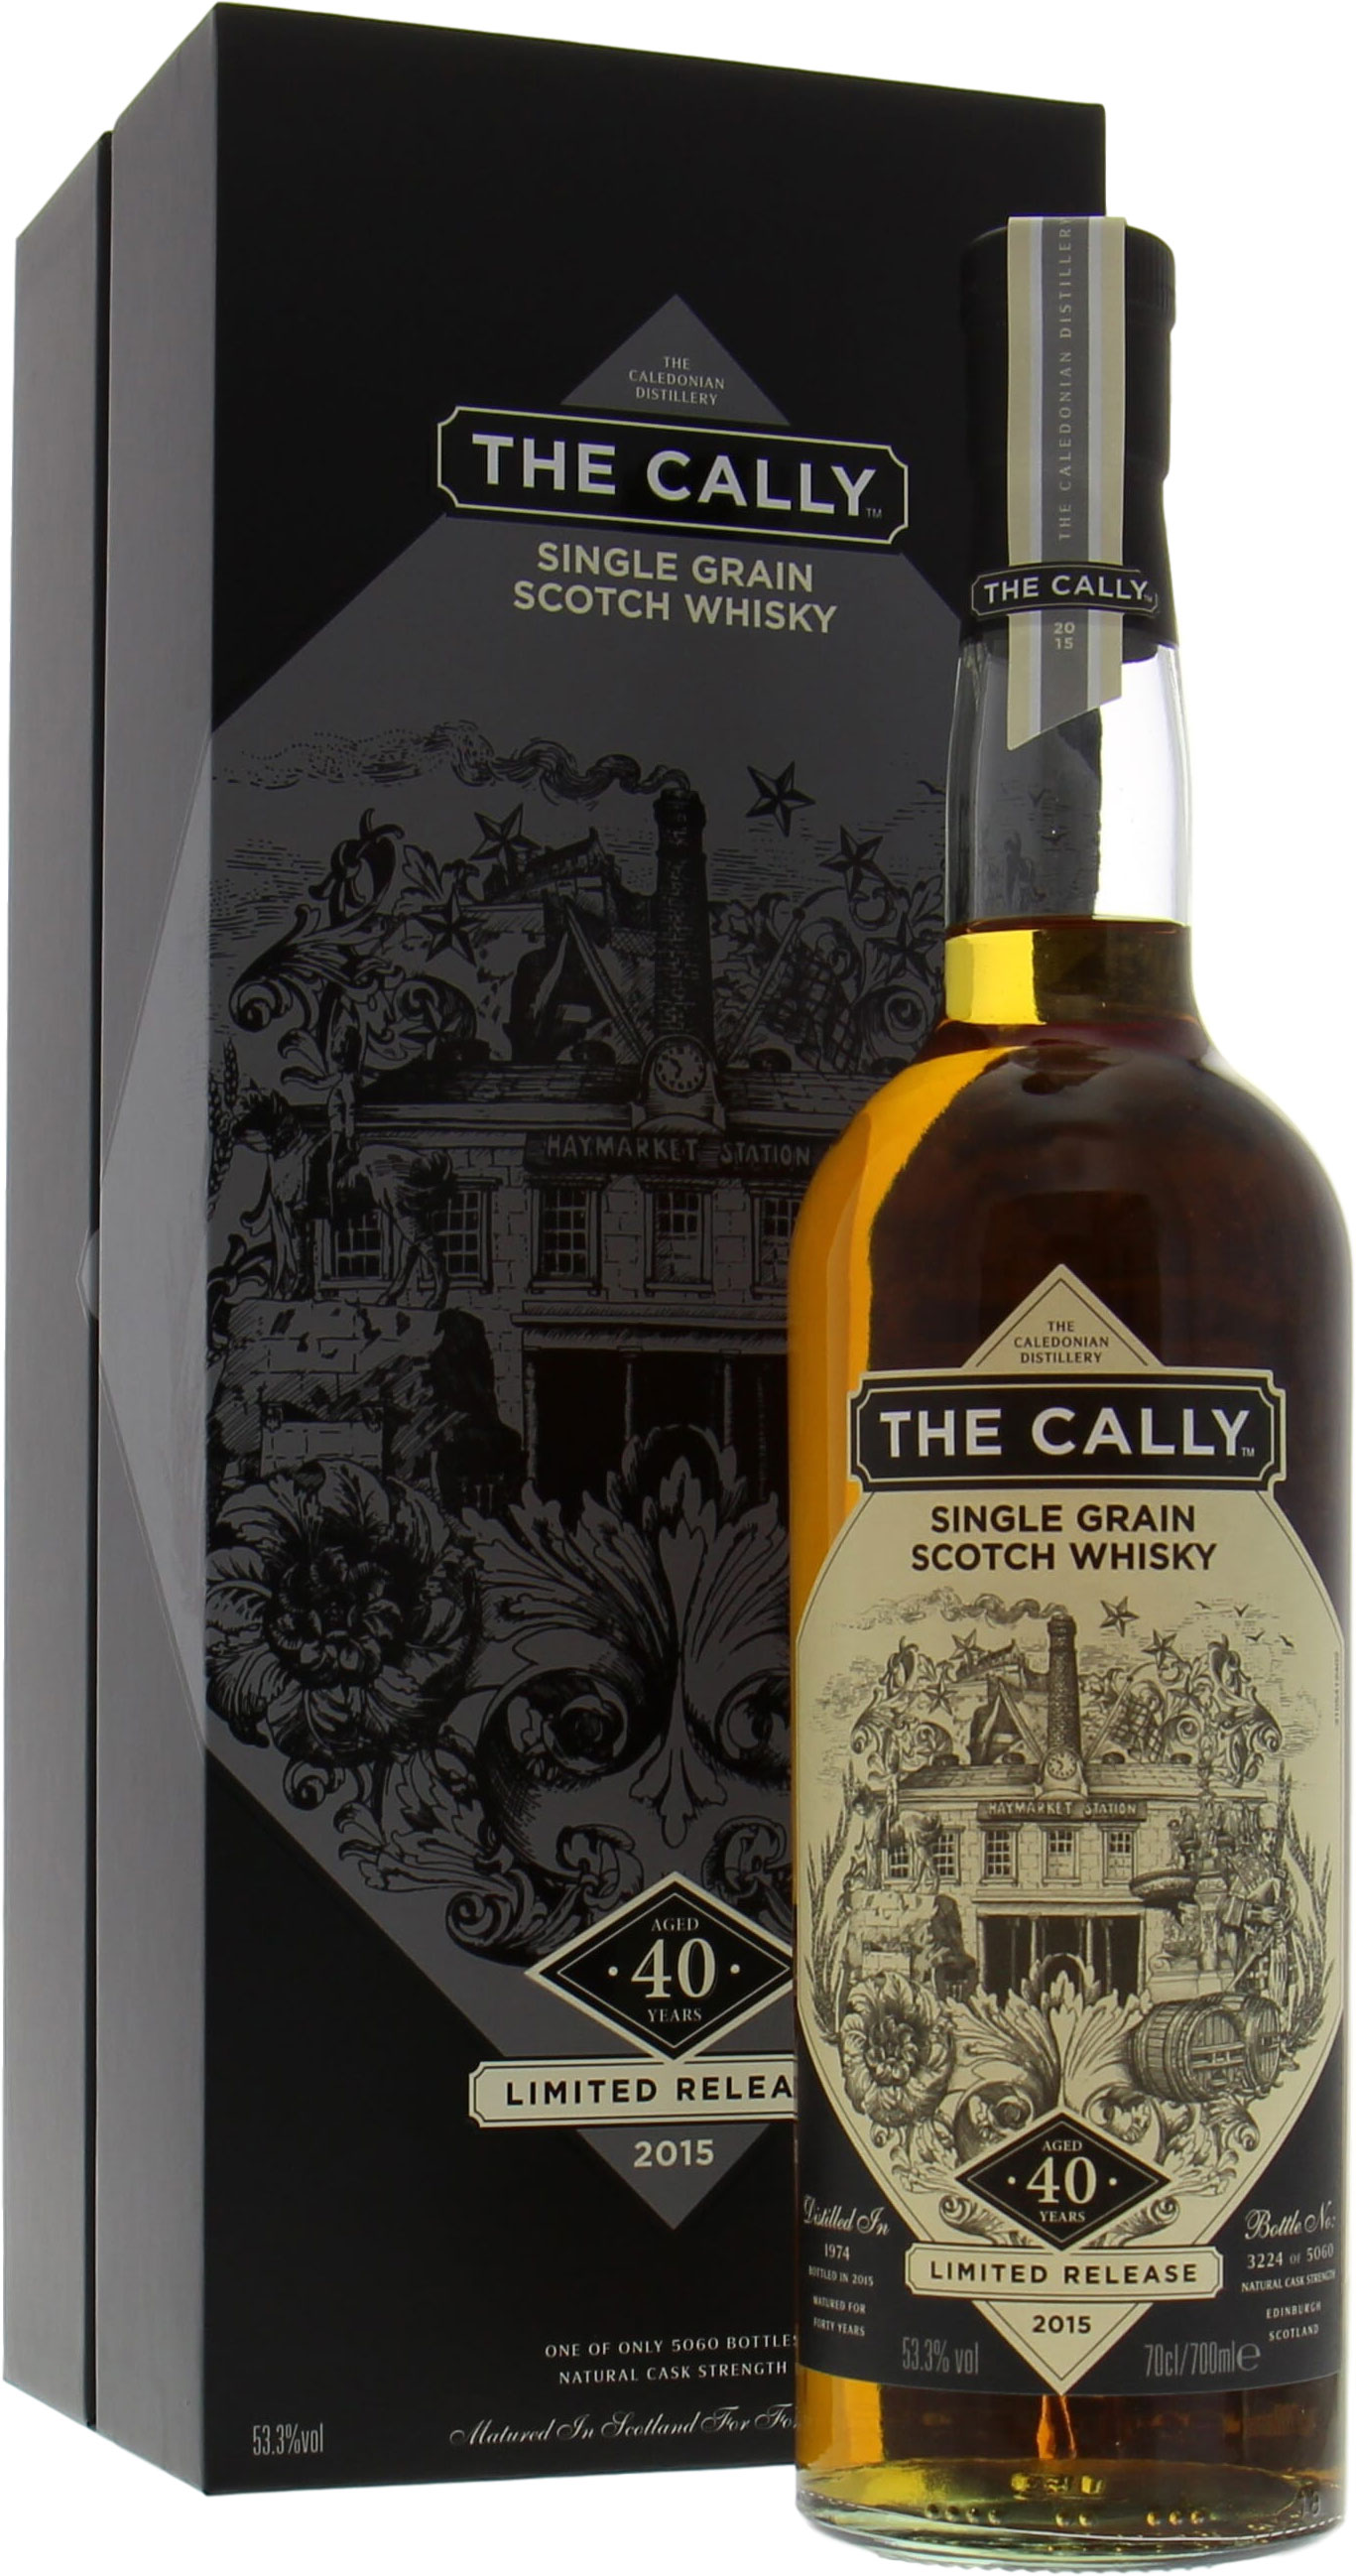 Caledonian - The Cally 40 Years Old Limited Release 2015 53.5% 1974